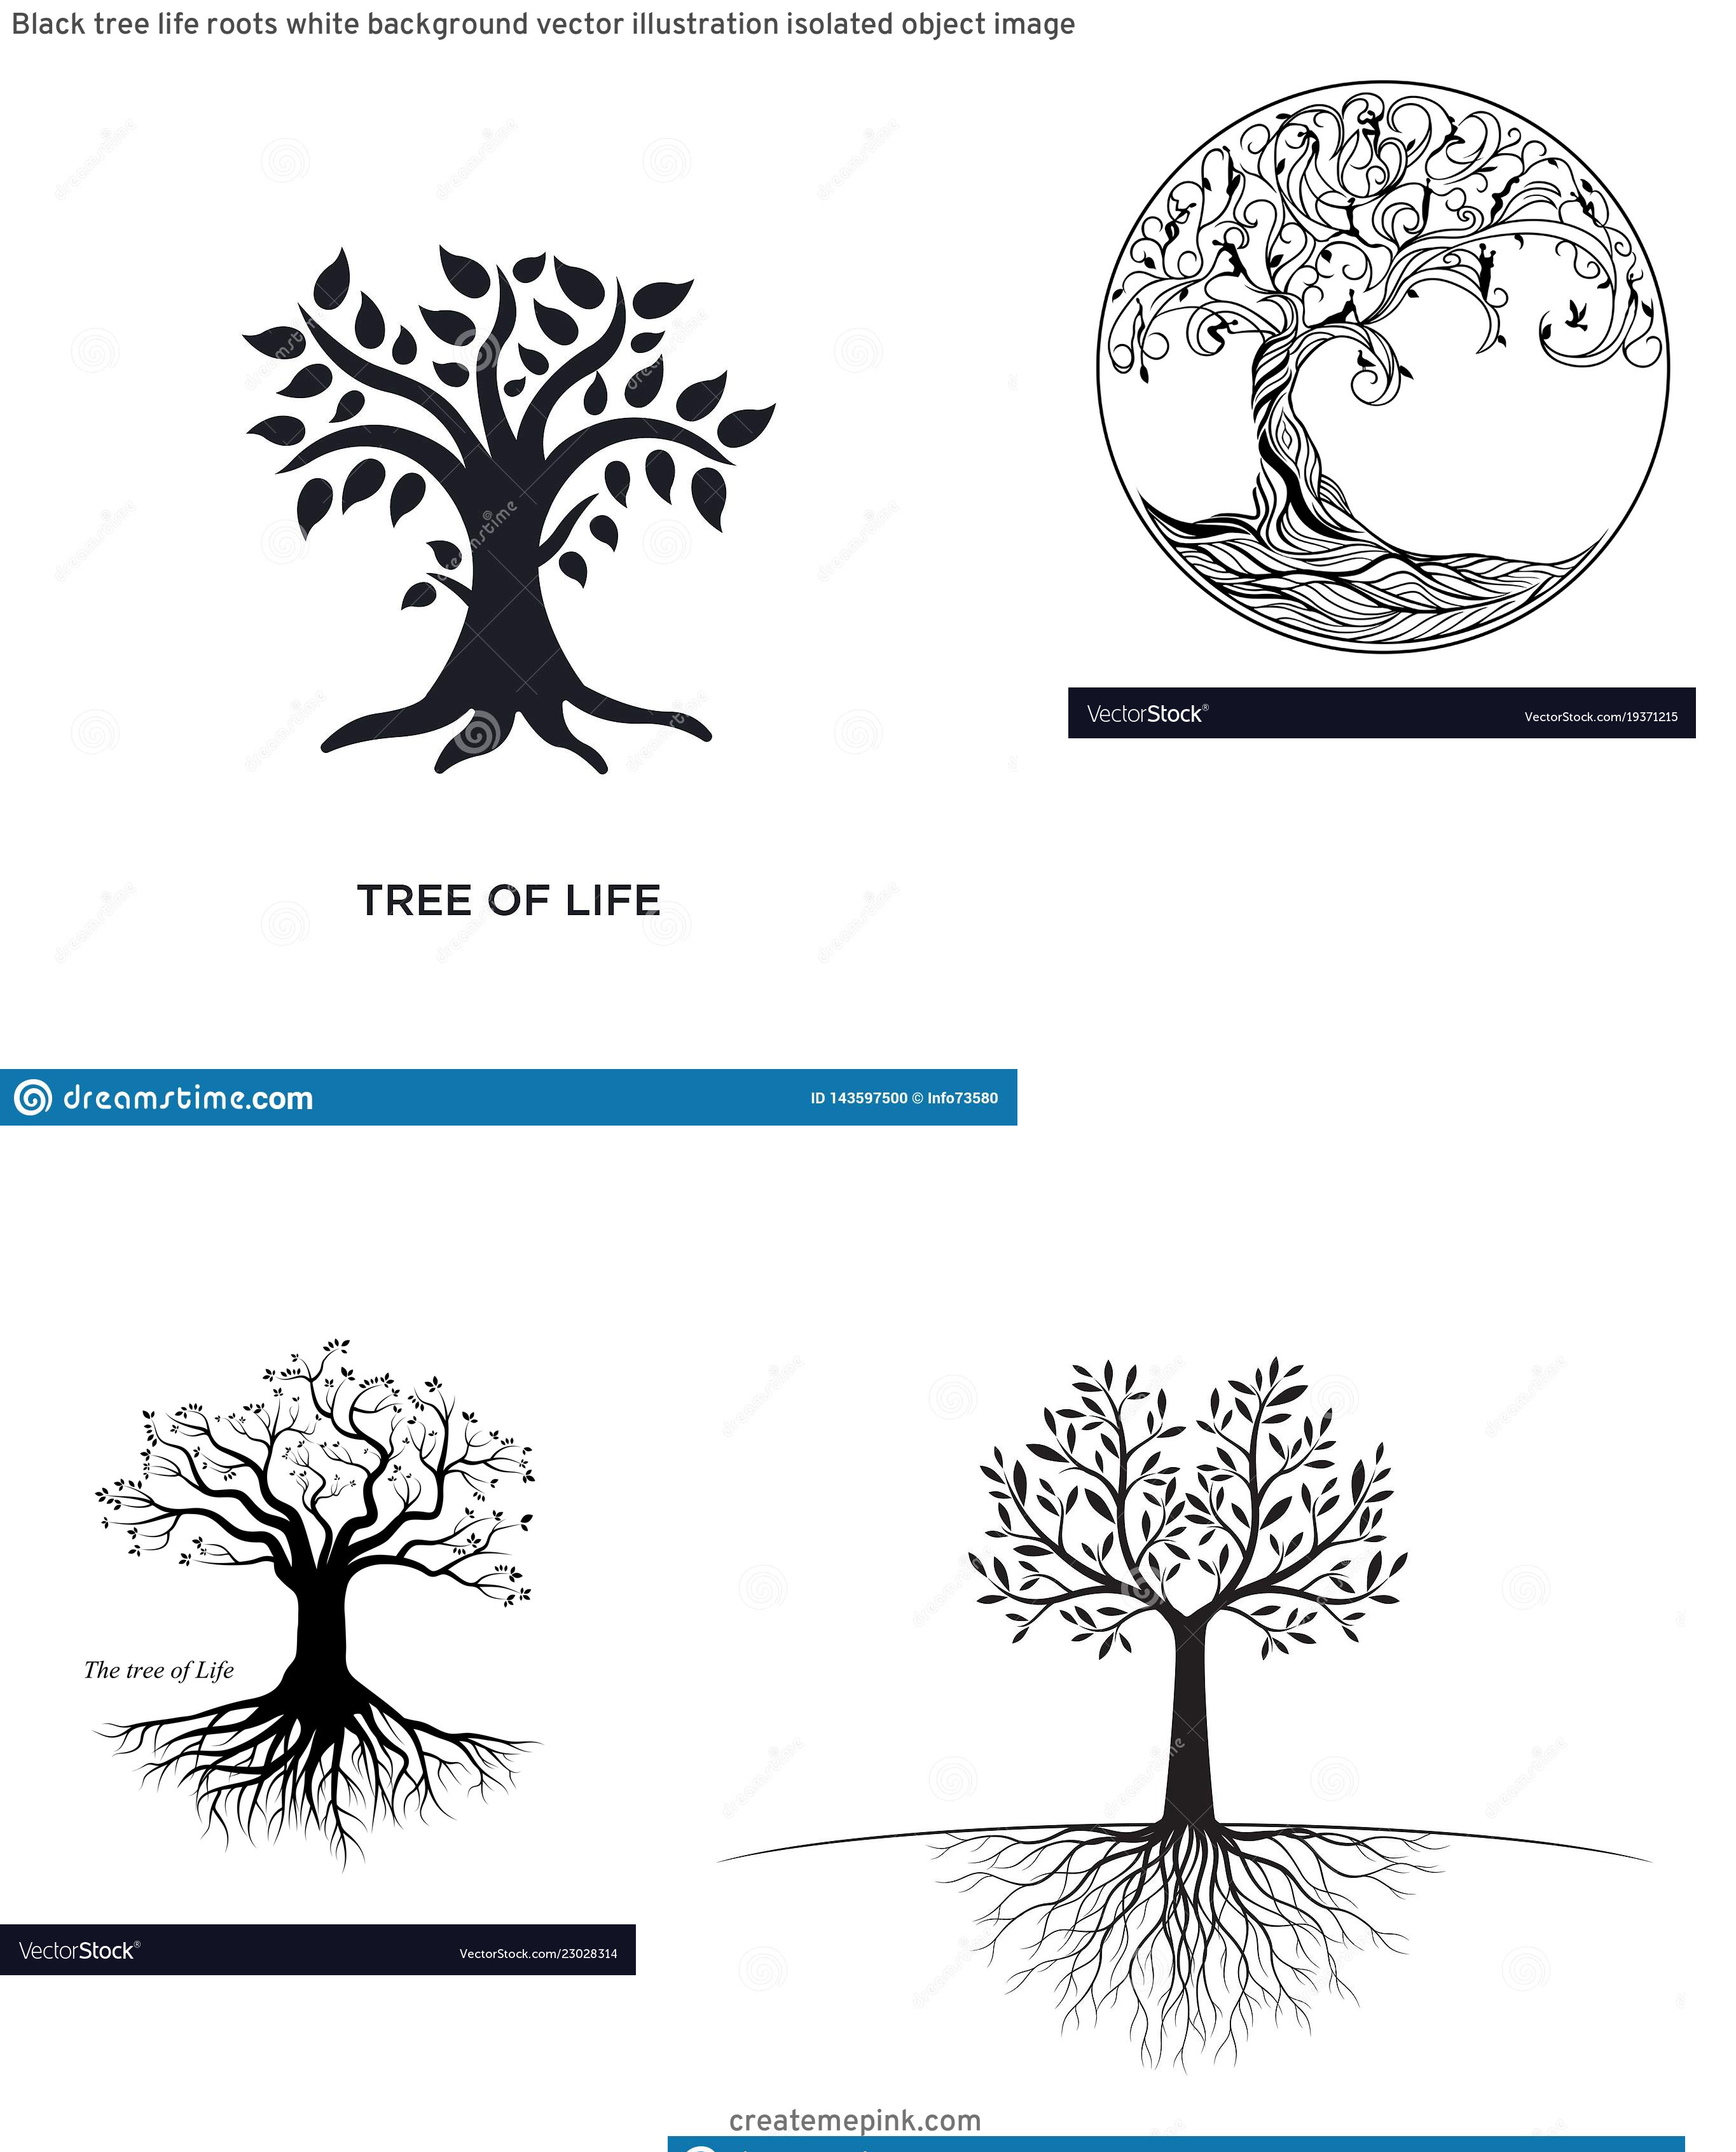 Vector Images Black Tree Of Life: Black Tree Life Roots White Background Vector Illustration Isolated Object Image